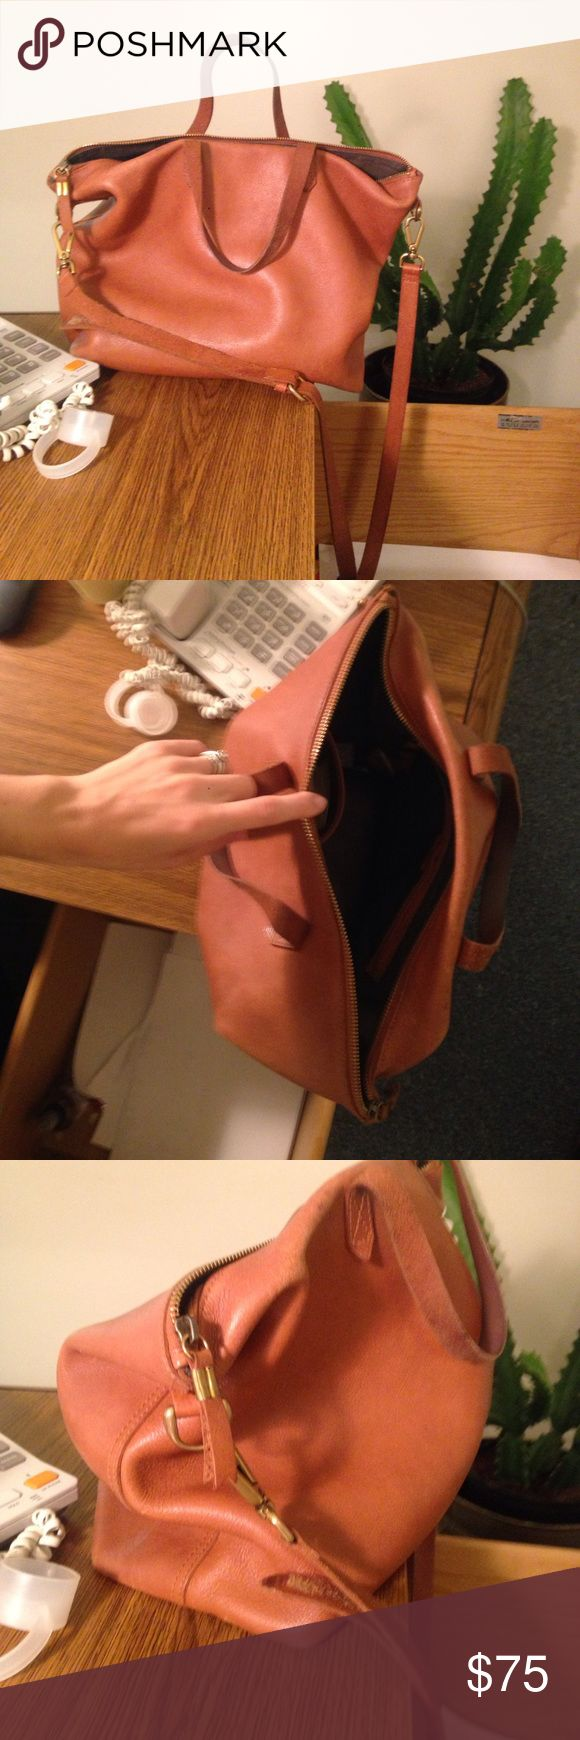 Madewell zip transport tote In good used condition. Price reflects use. Madewell Bags